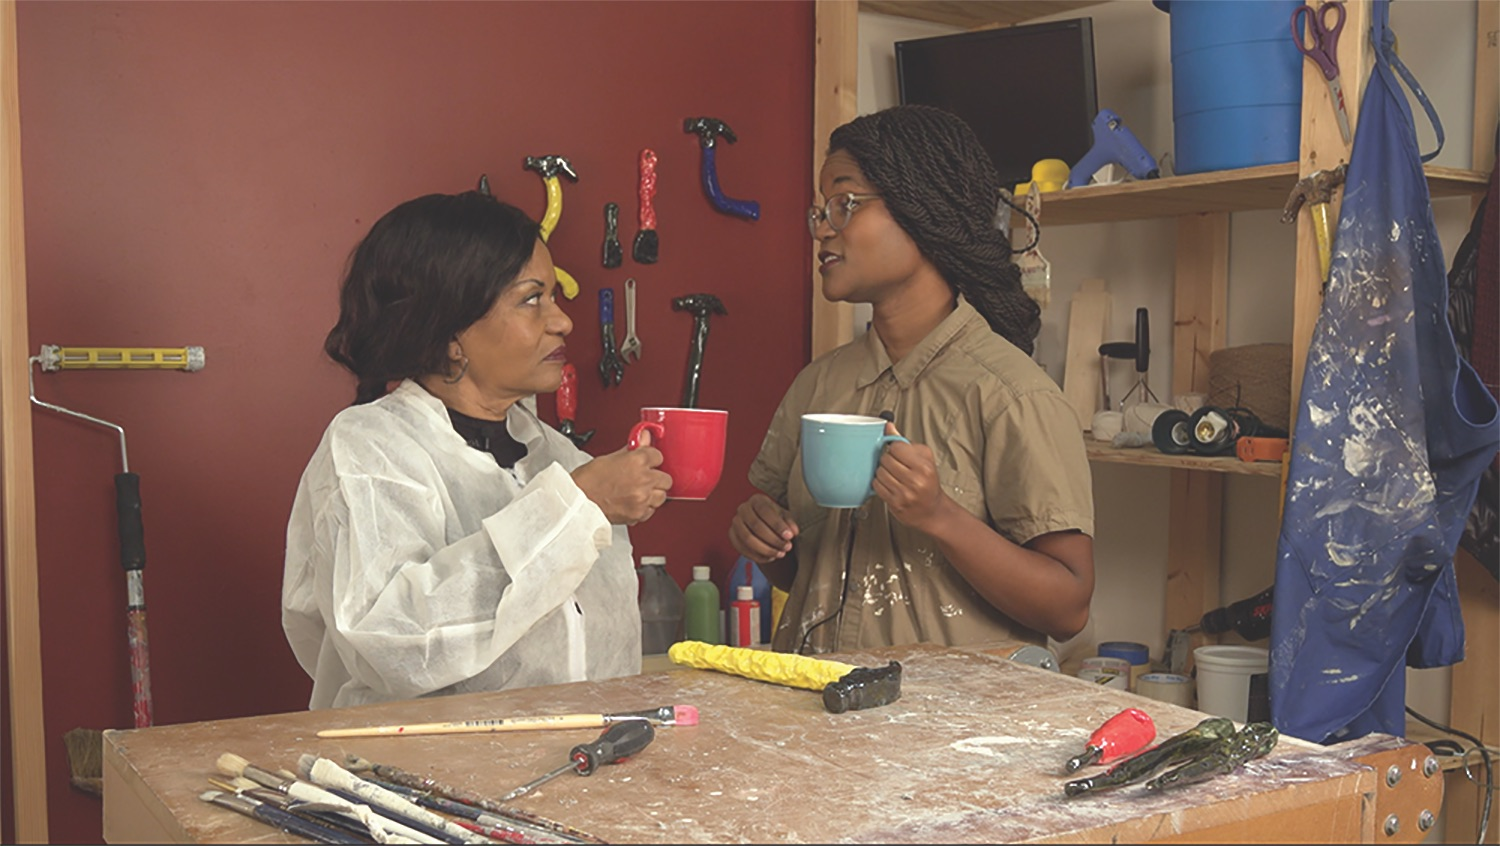 Image still of two women holding cups